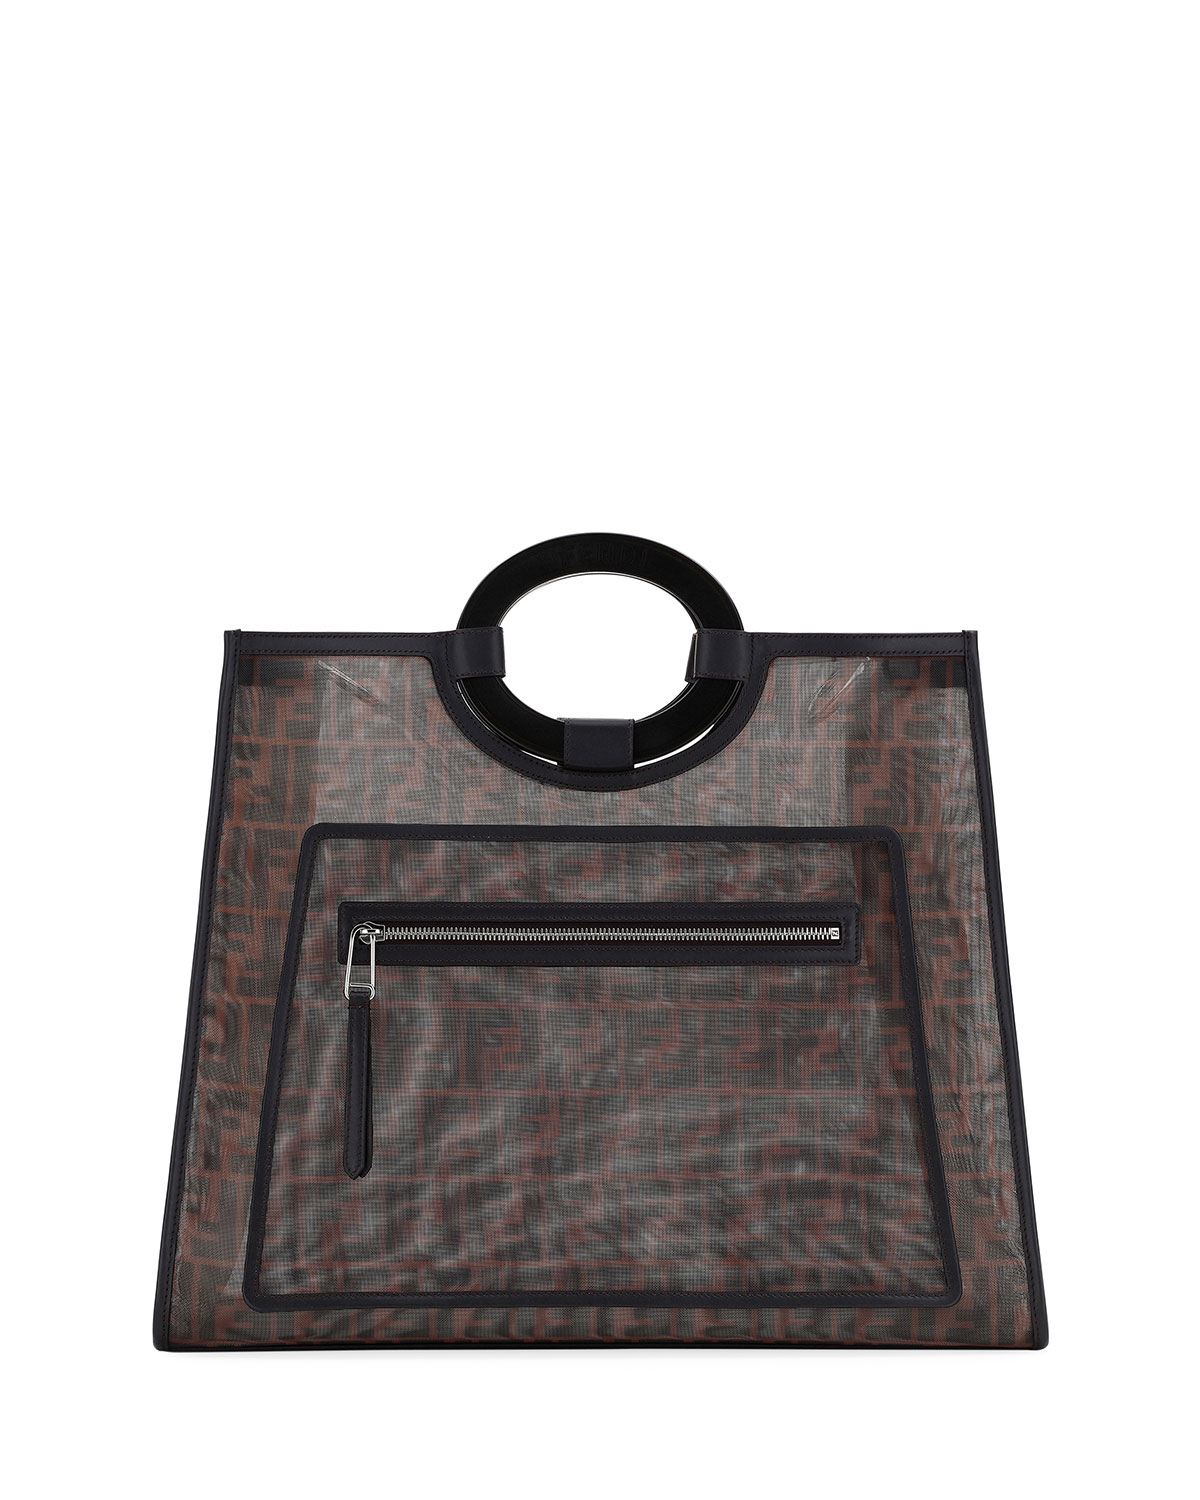 Runaway Large Ff Mesh Shopping Tote Bag in Brown/Black